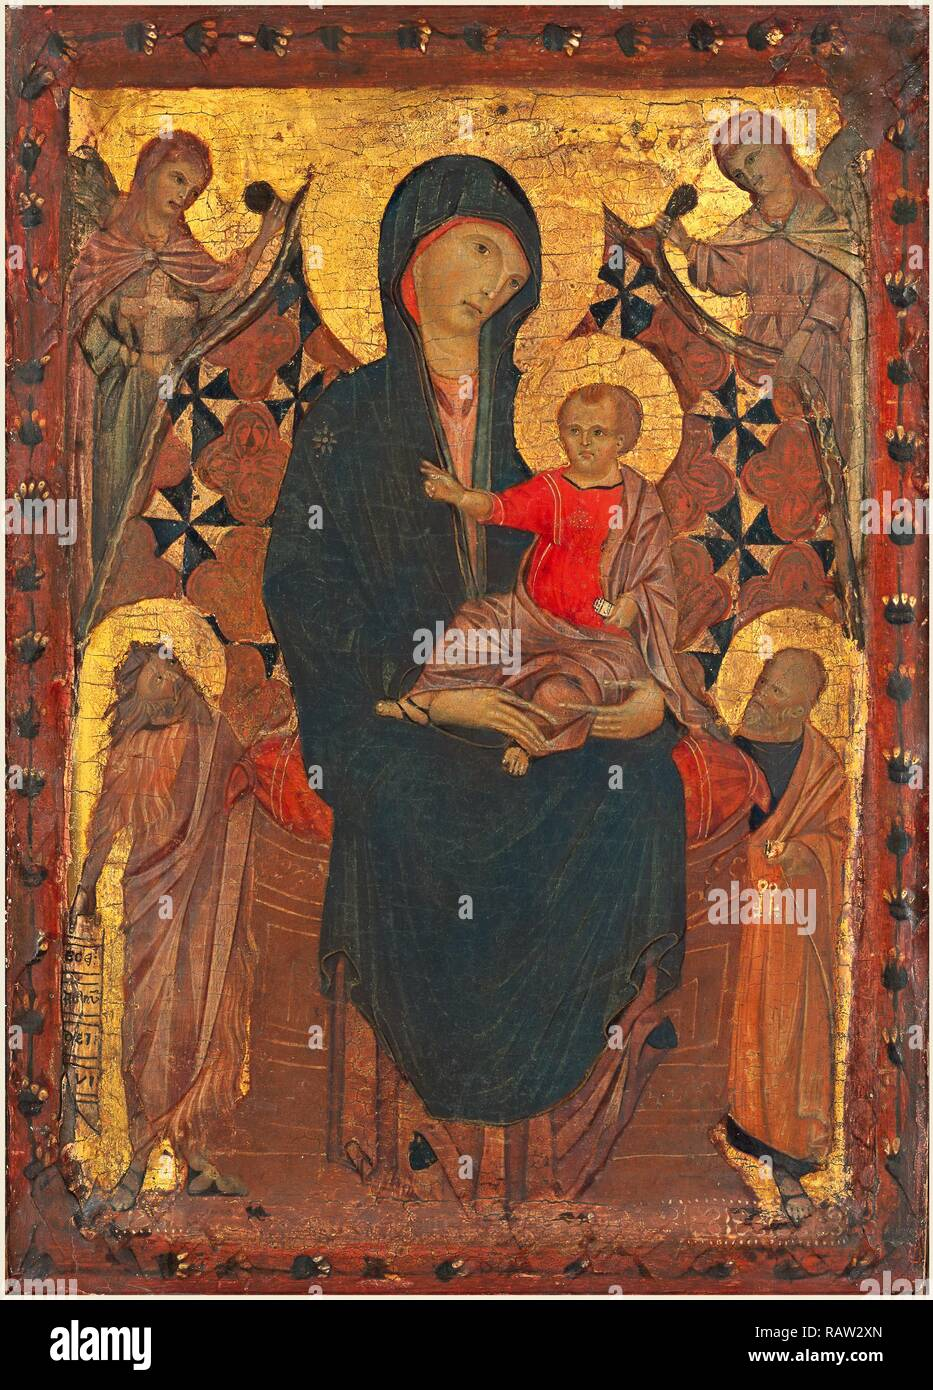 Attributed to Cimabue, Italian (mentioned 1272-active 1302), Madonna and Child with Saint John the Baptist and Saint reimagined - Stock Image